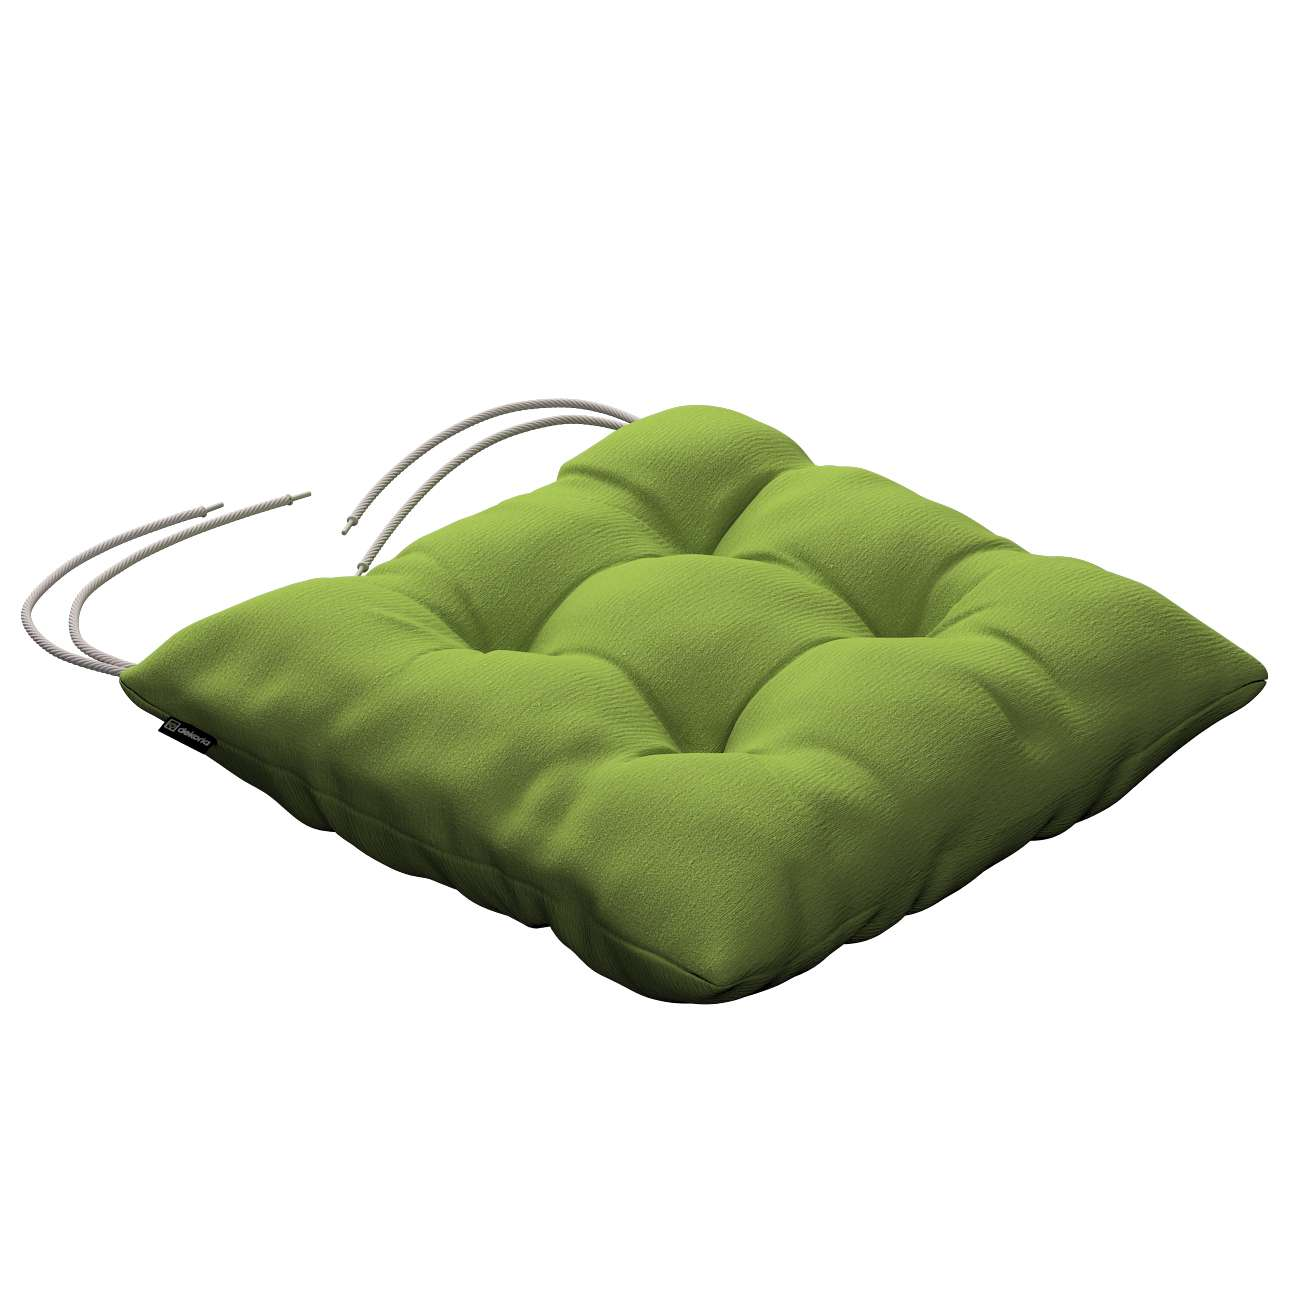 Jacek seat pad with ties 40 x 40 x 8 cm (16 x 16 x 3 inch) in collection Quadro, fabric: 136-37